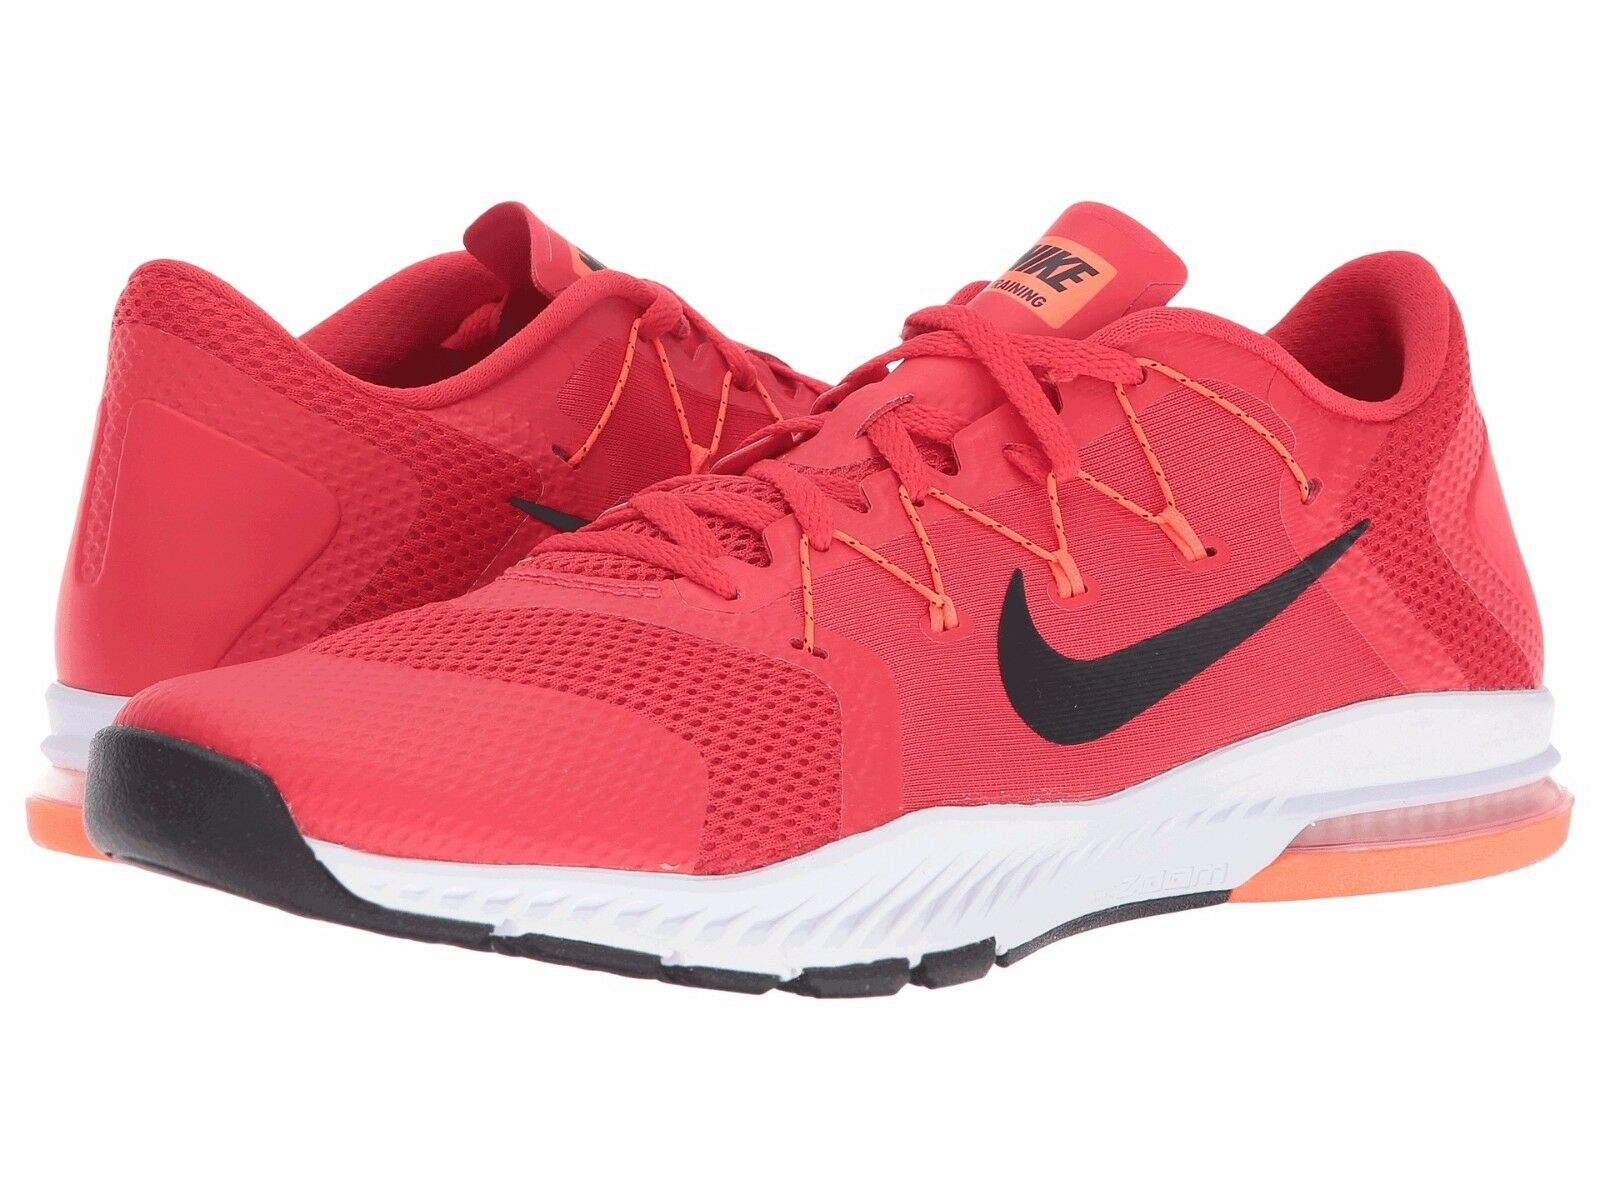 Men's Nike Zoom Train Complete Training Shoes, 882119 600 Comfortable Cheap and beautiful fashion